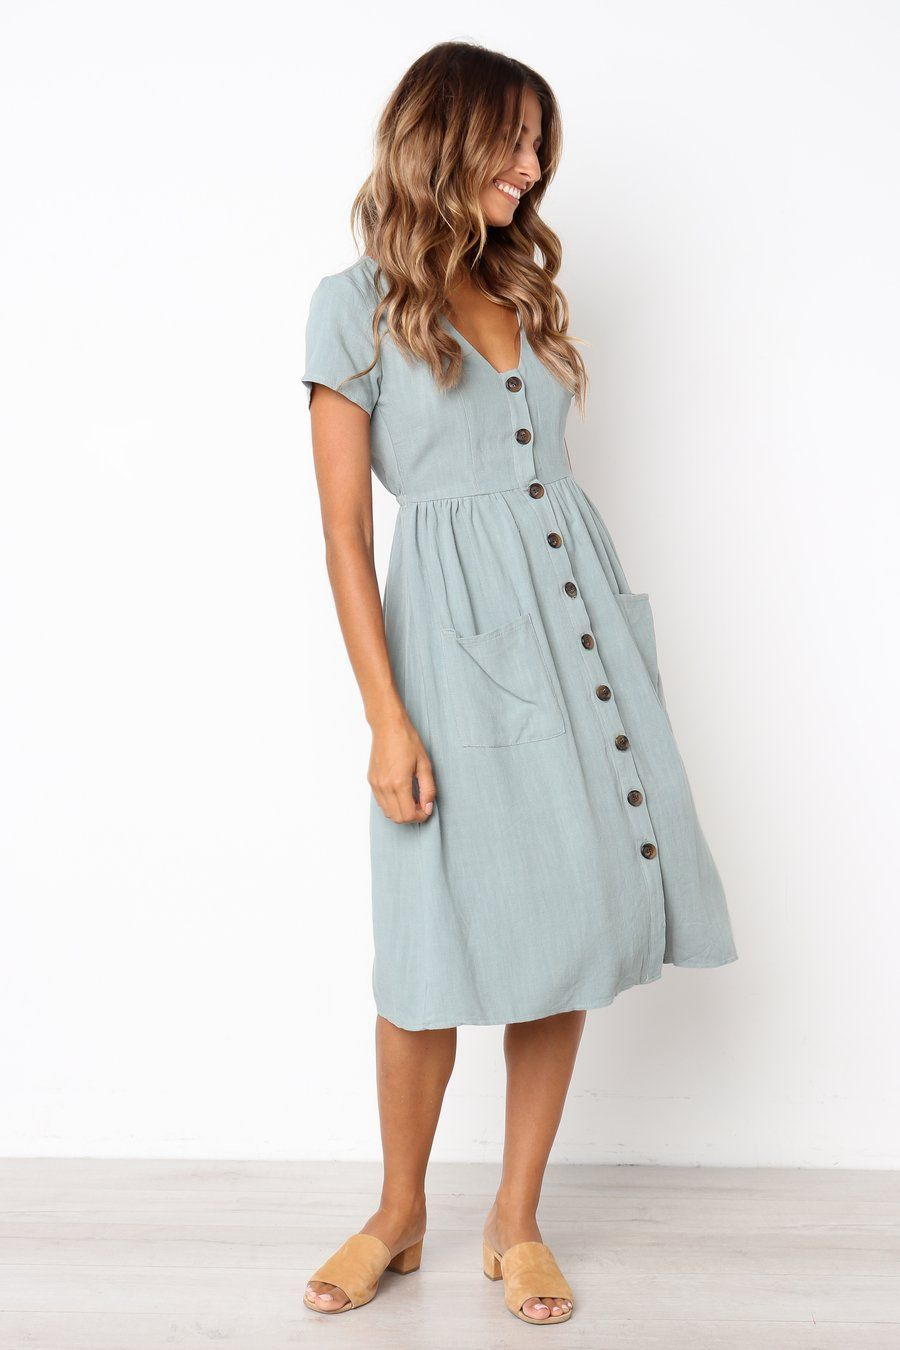 5b6312f1553f Vicky Dress - Sage....this may be a perfect dress. So cute. Love the  buttons